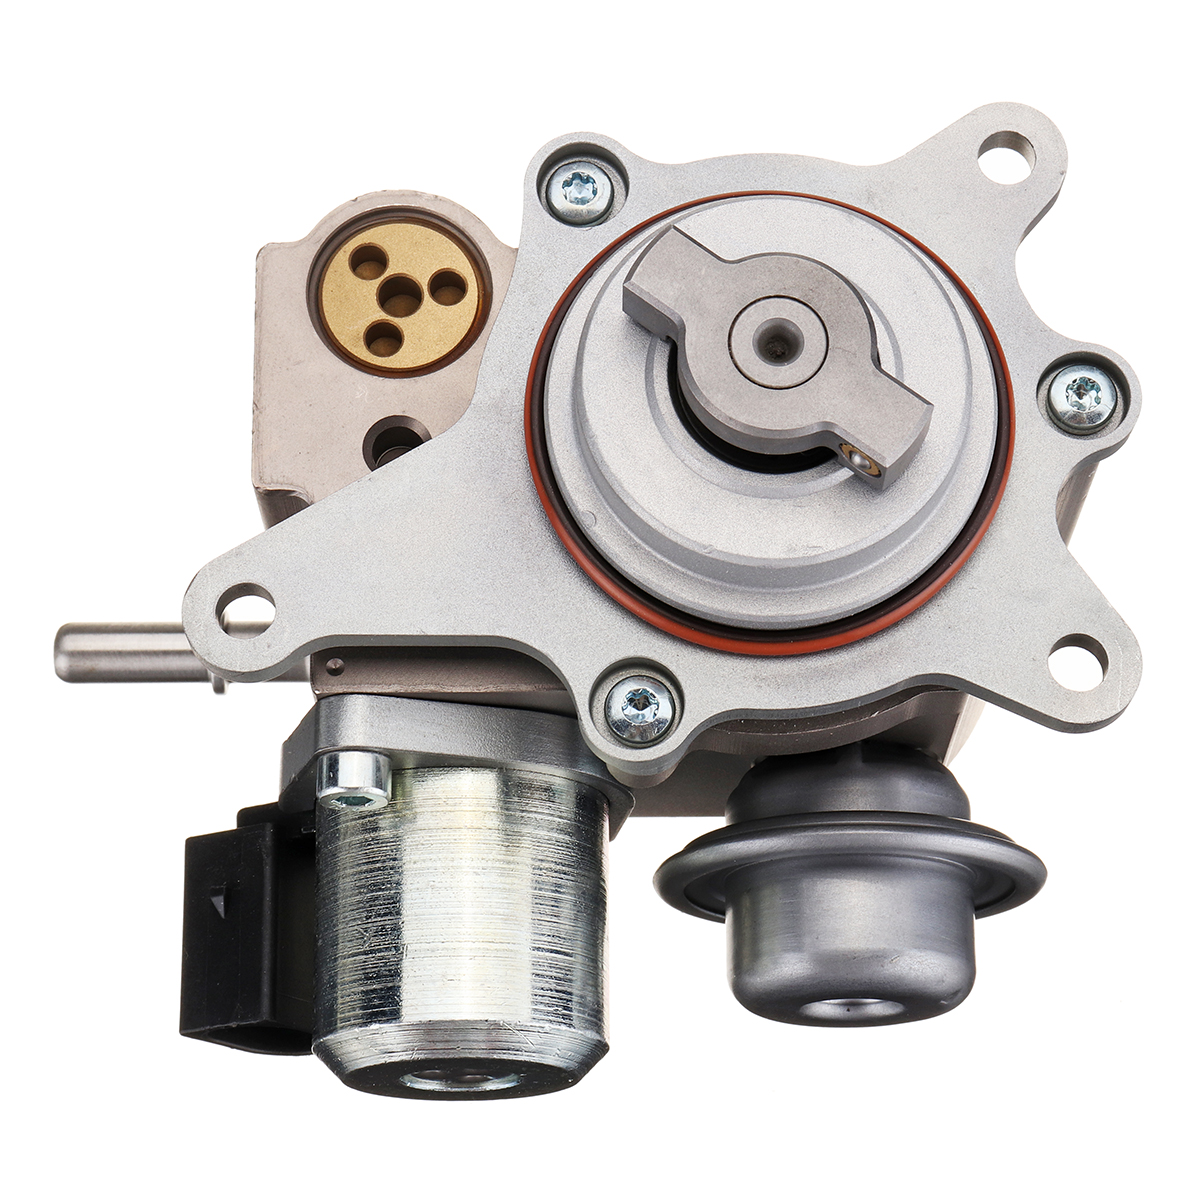 High Pressure Fuel Pump For BMW Mini Cooper S Turbocharged R55-R59 13517573436